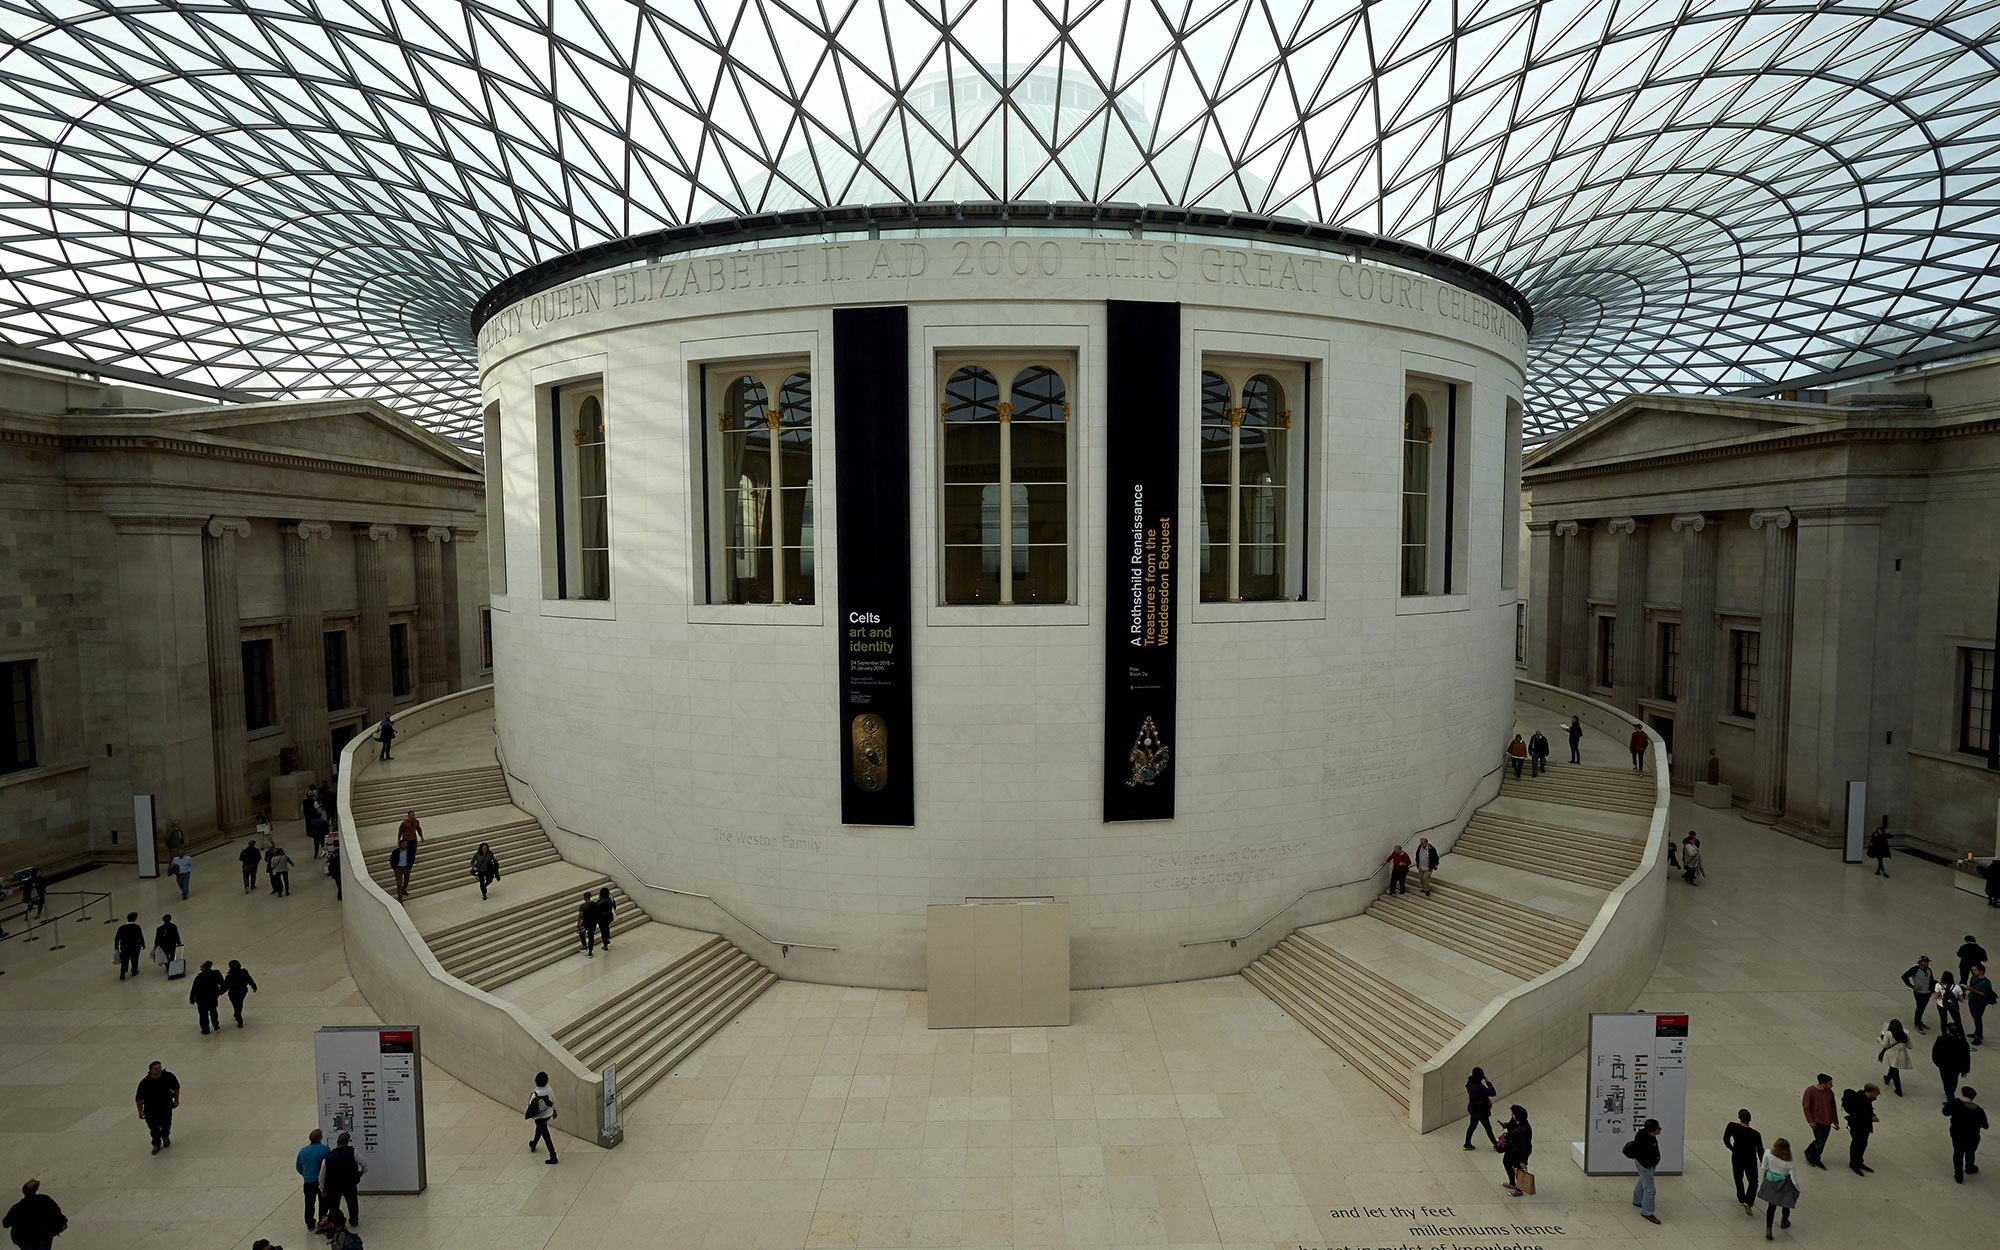 The Most-Visited Museums in the World